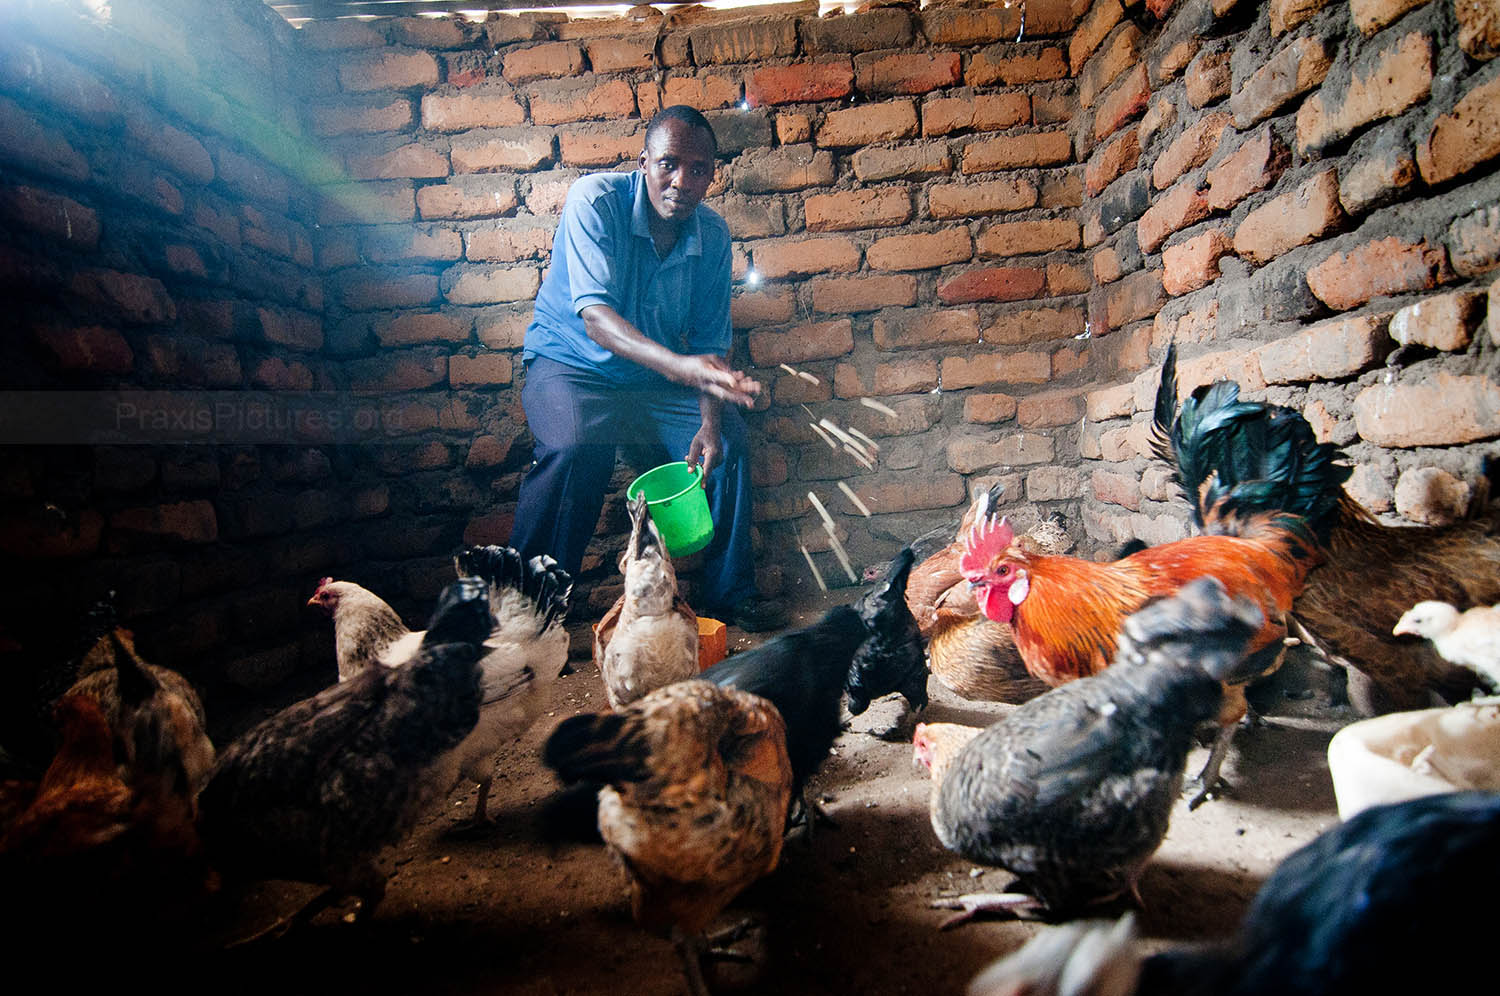 OMAR - Omar is a member of the Tumaini VICOBA group made up mostly of people living with HIV. The group decided to start a jointly owned poultry farm, allowing them to share the responsibilities and benefits. The group has already made a profit and plans to expand.